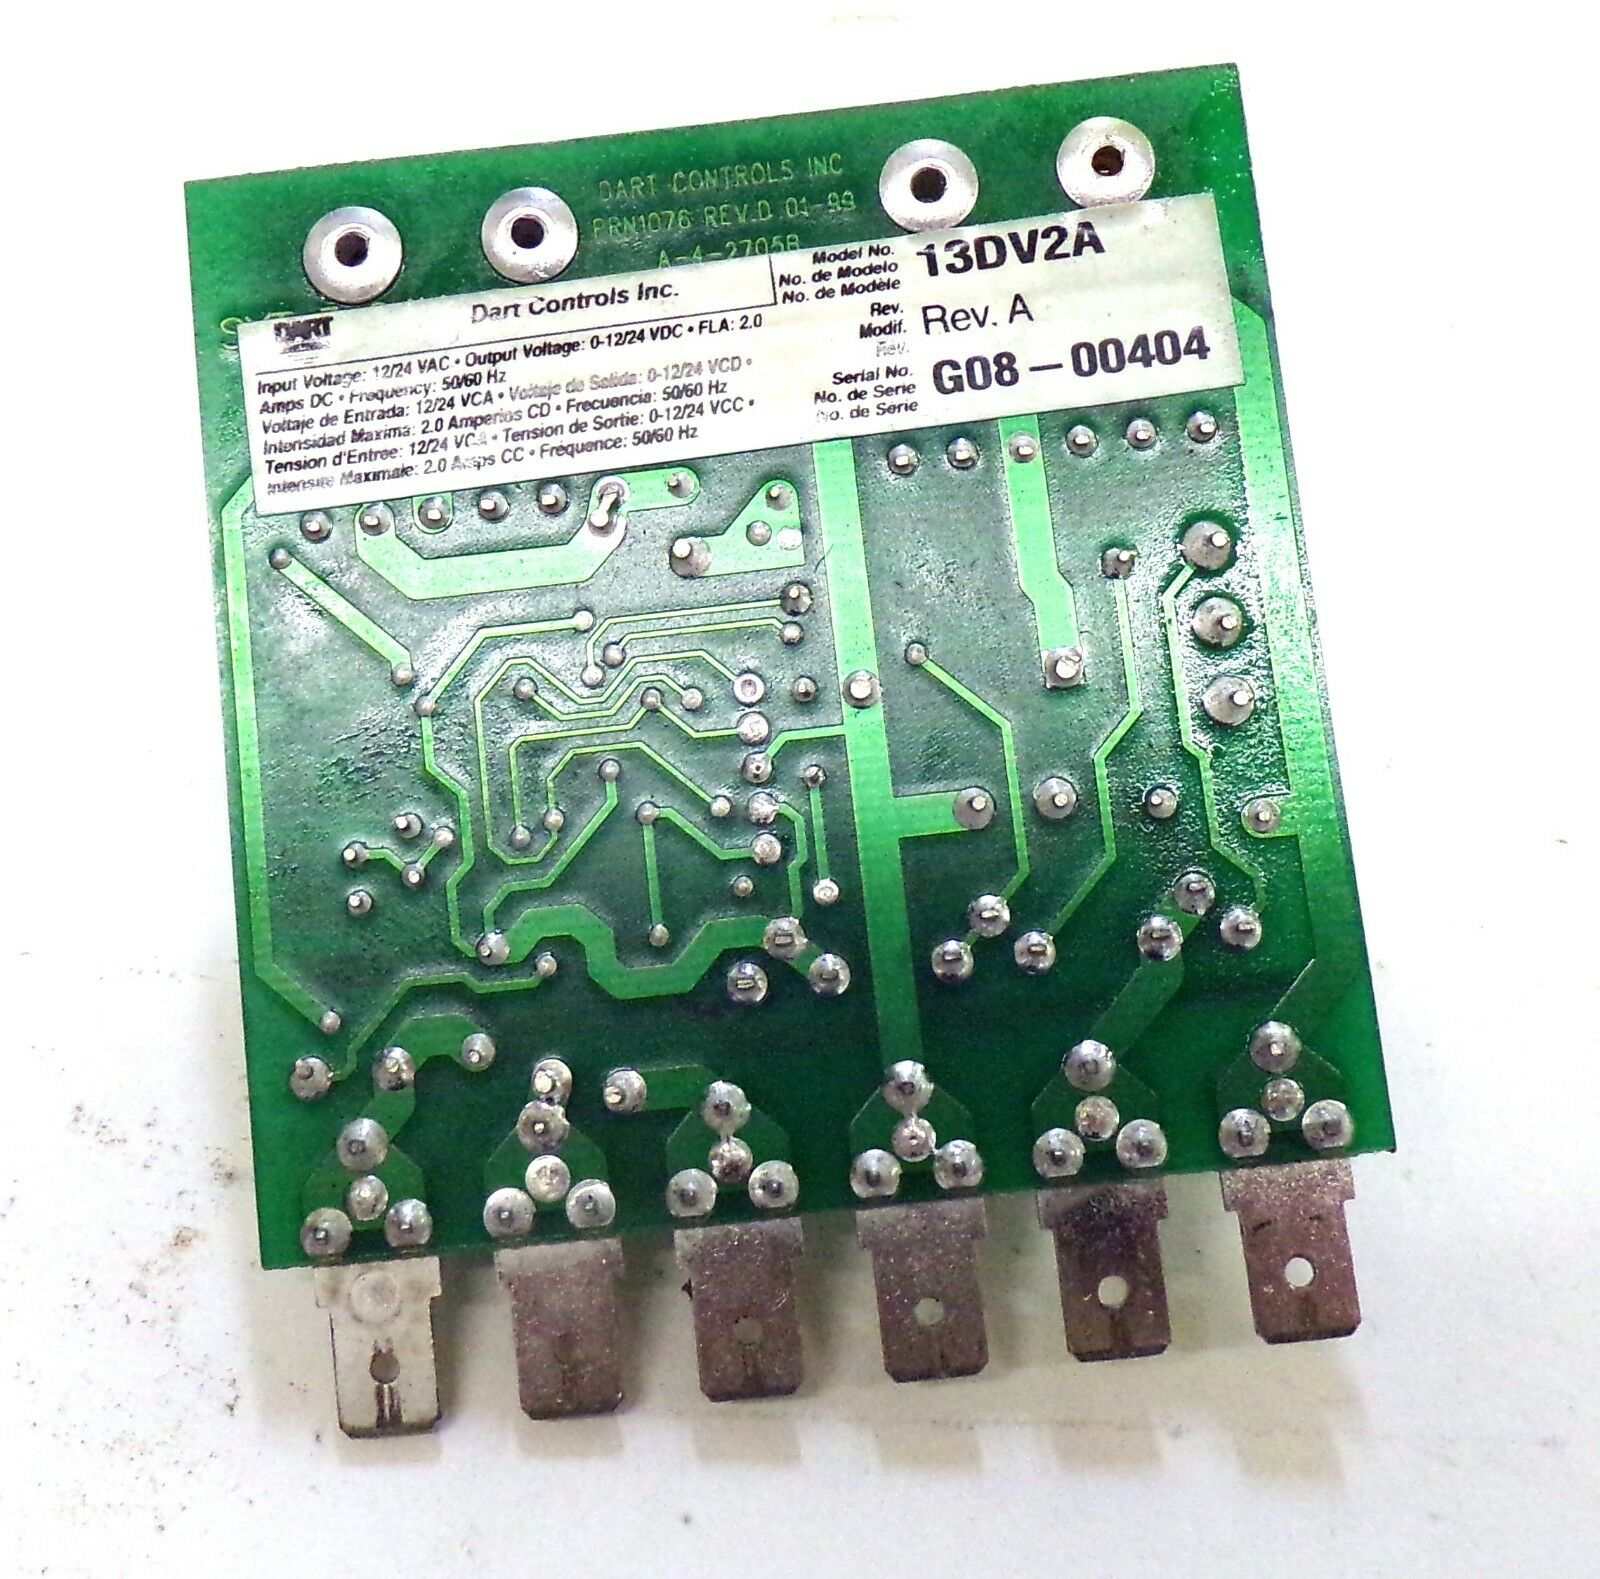 10//20VDC Shunt Wound Volts Dart Controls DC Speed Control Chassis 0 to